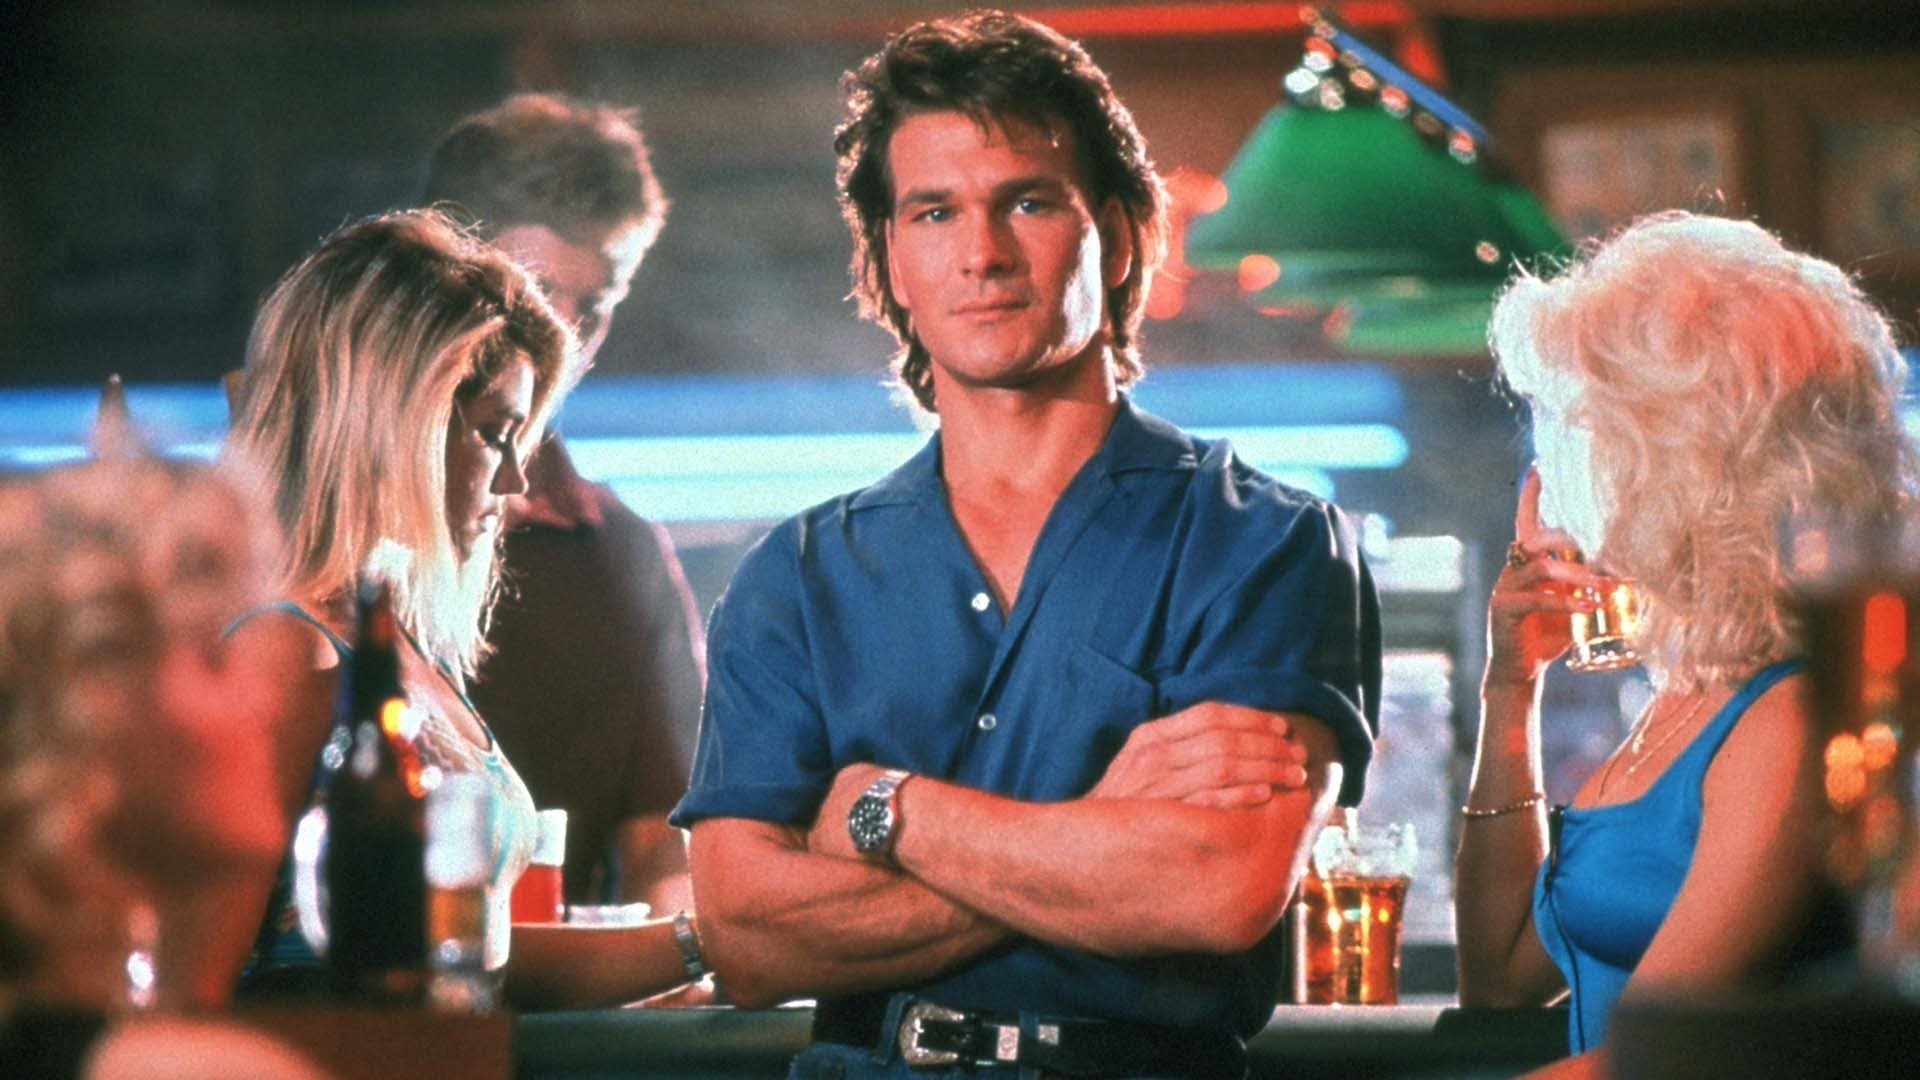 This Patrick Swayze Story Shows What The Actor Was Capable Of